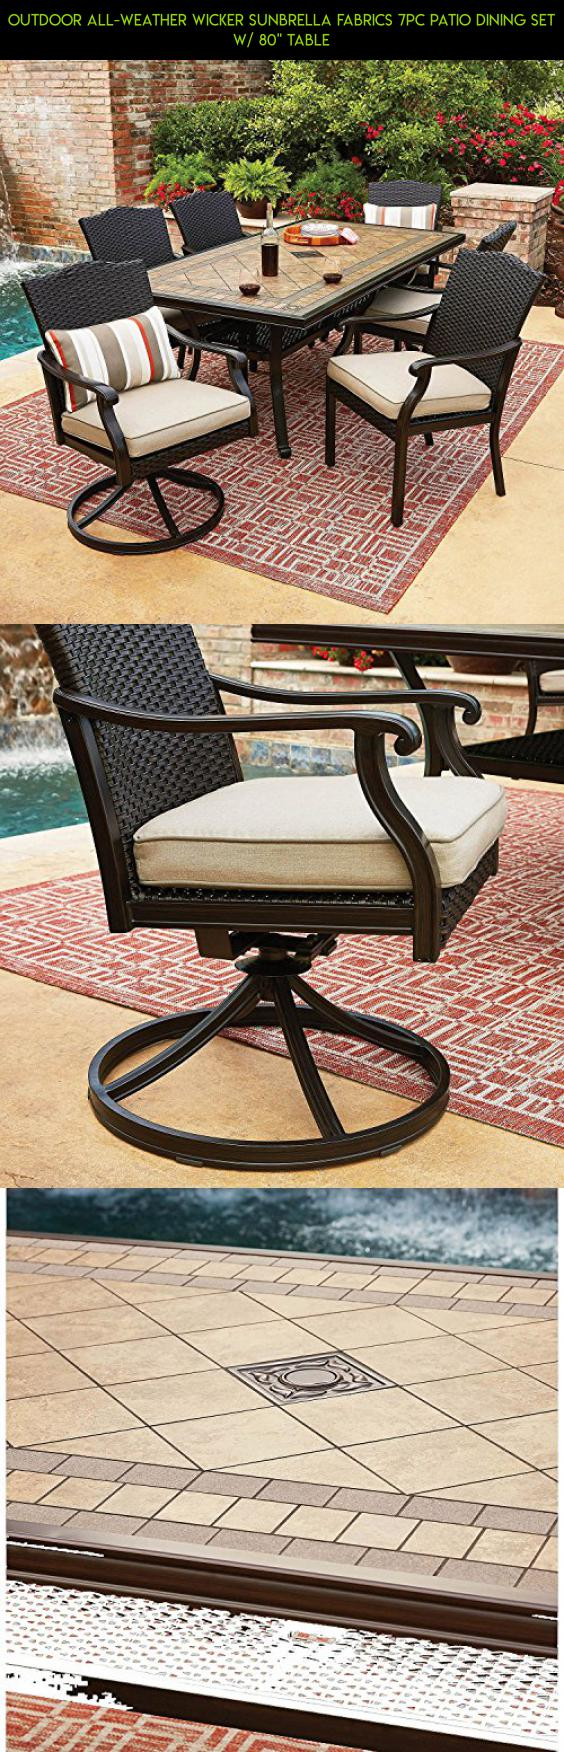 outdoor all weather wicker sunbrella fabrics 7pc patio dining set